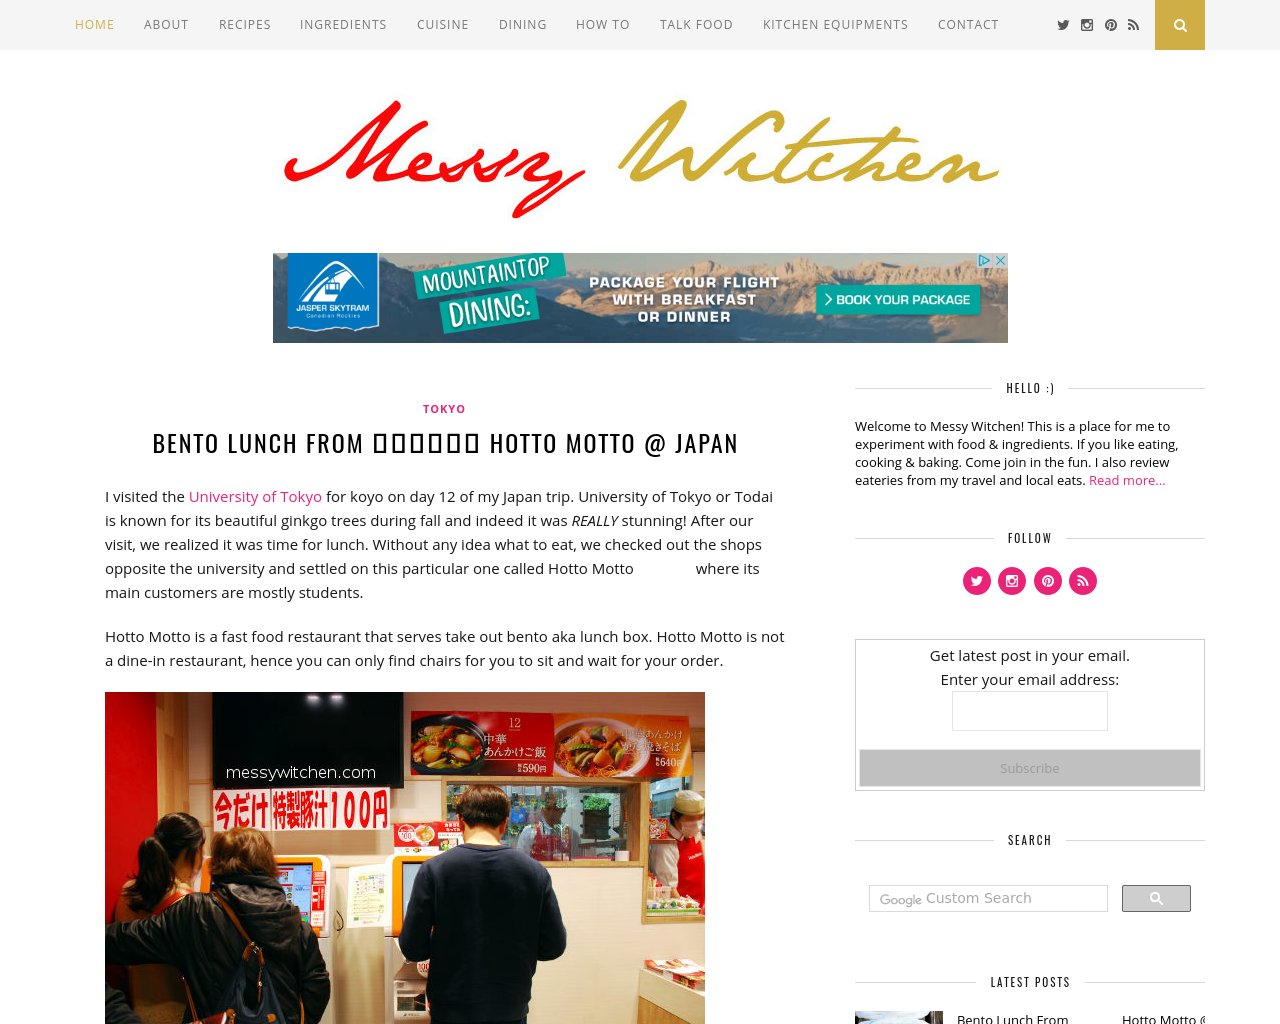 messy-witchen-Advertising-Reviews-Pricing